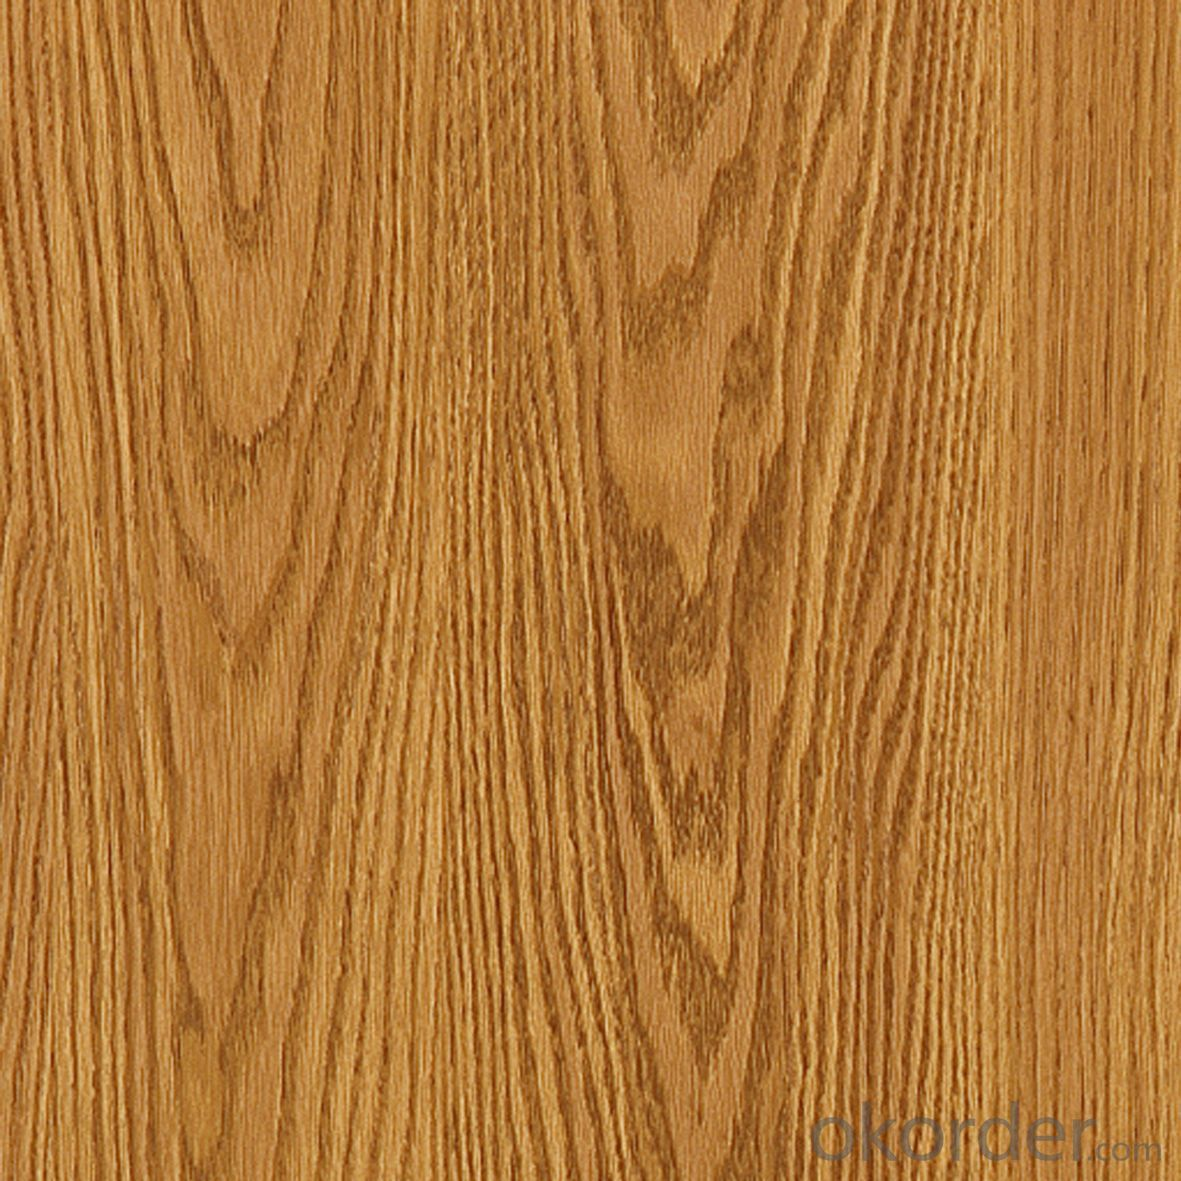 Wood Grain Laminate ~ Buy wood grain color design high pressure laminates price